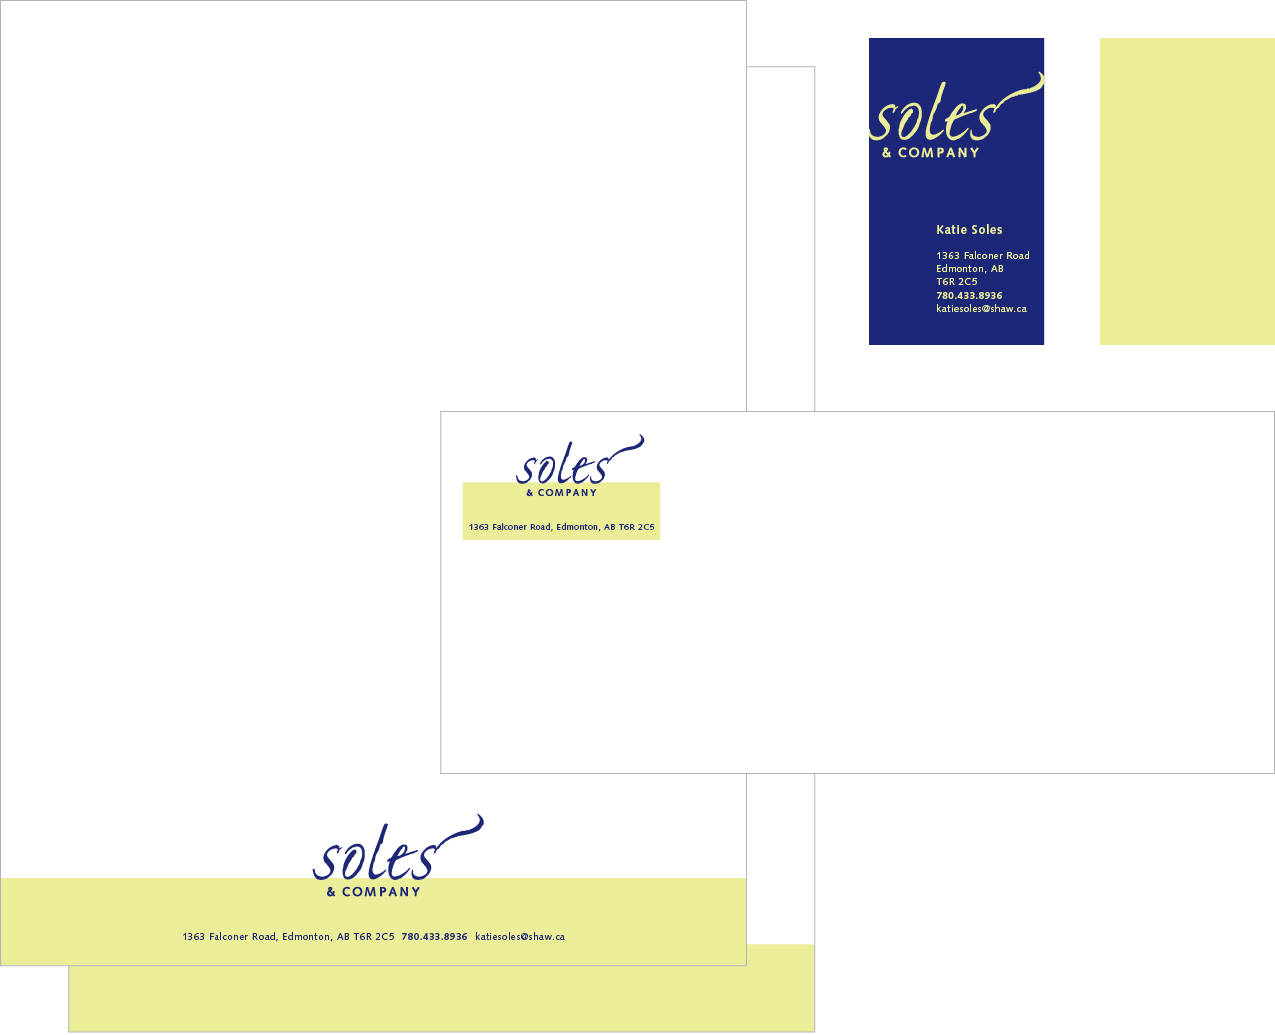 Collateral for Soles & Company